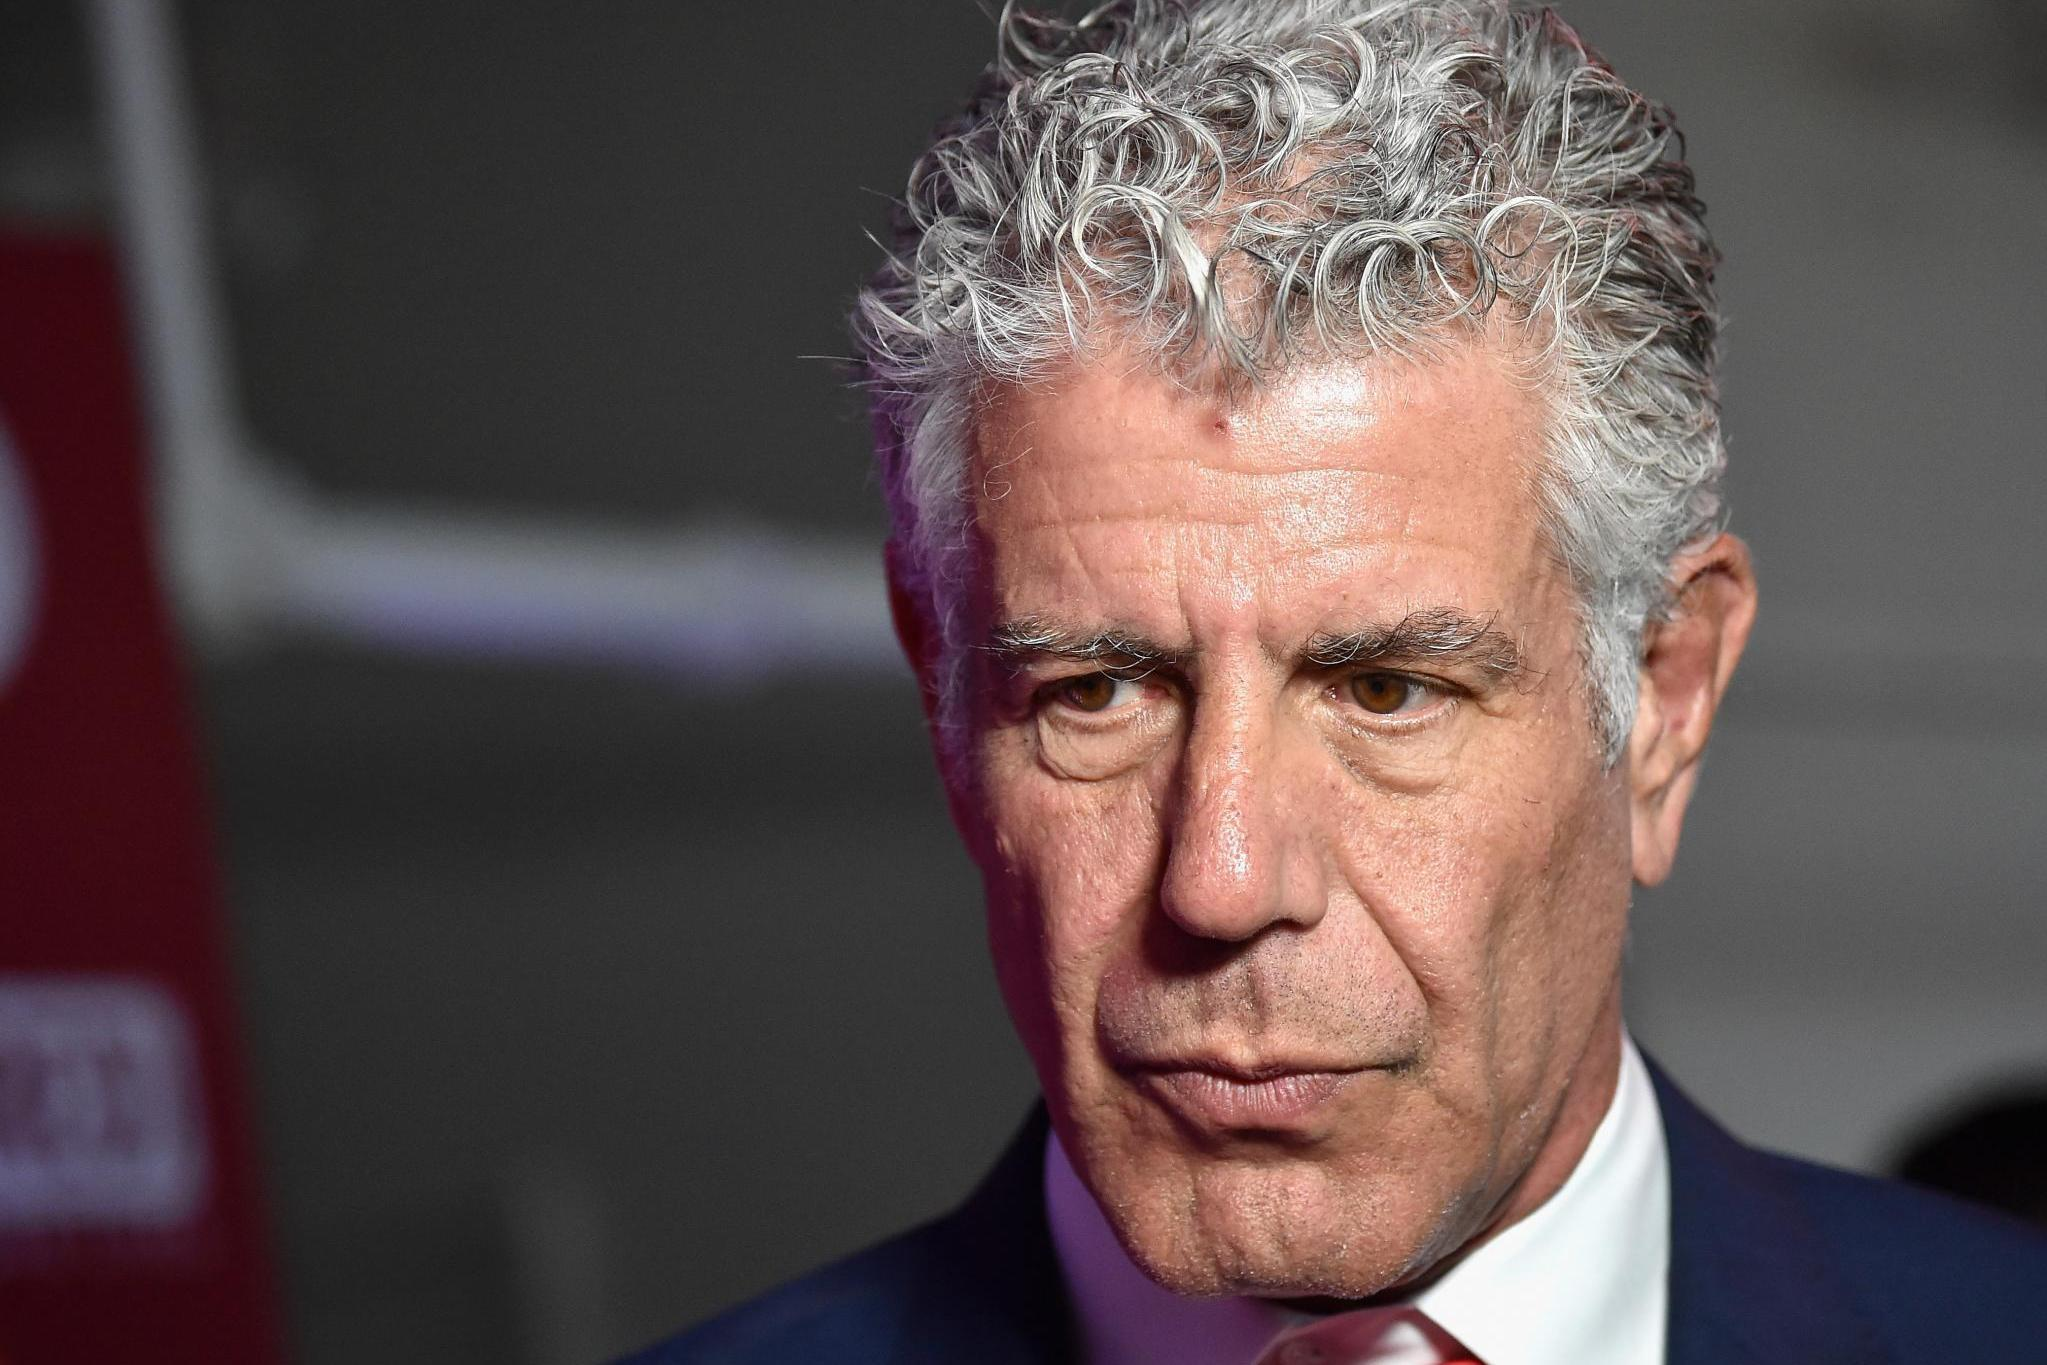 Anthony Bourdain: Craft beer fans have gone too far